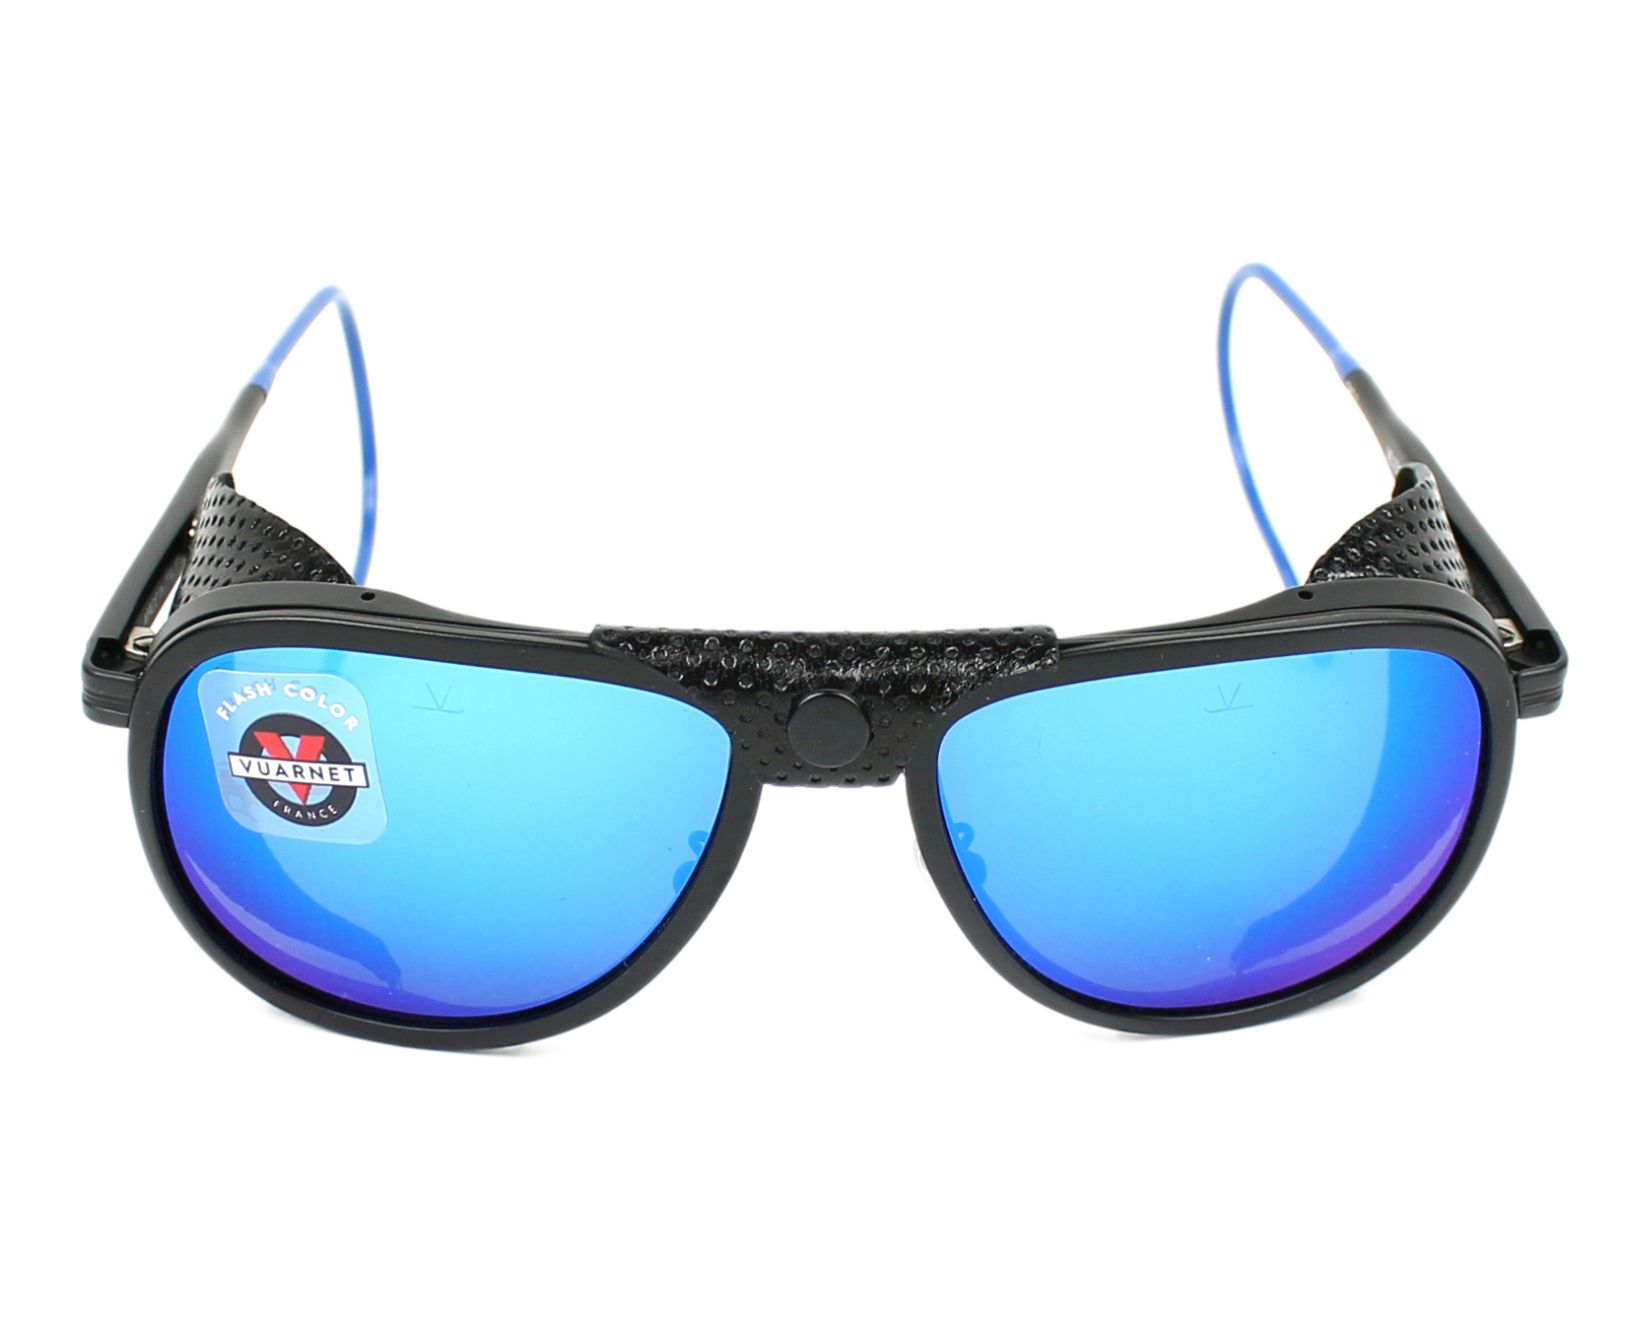 f993809c51 Sunglasses Vuarnet VL-1315 0011-1126 55-14 Black Blue front view